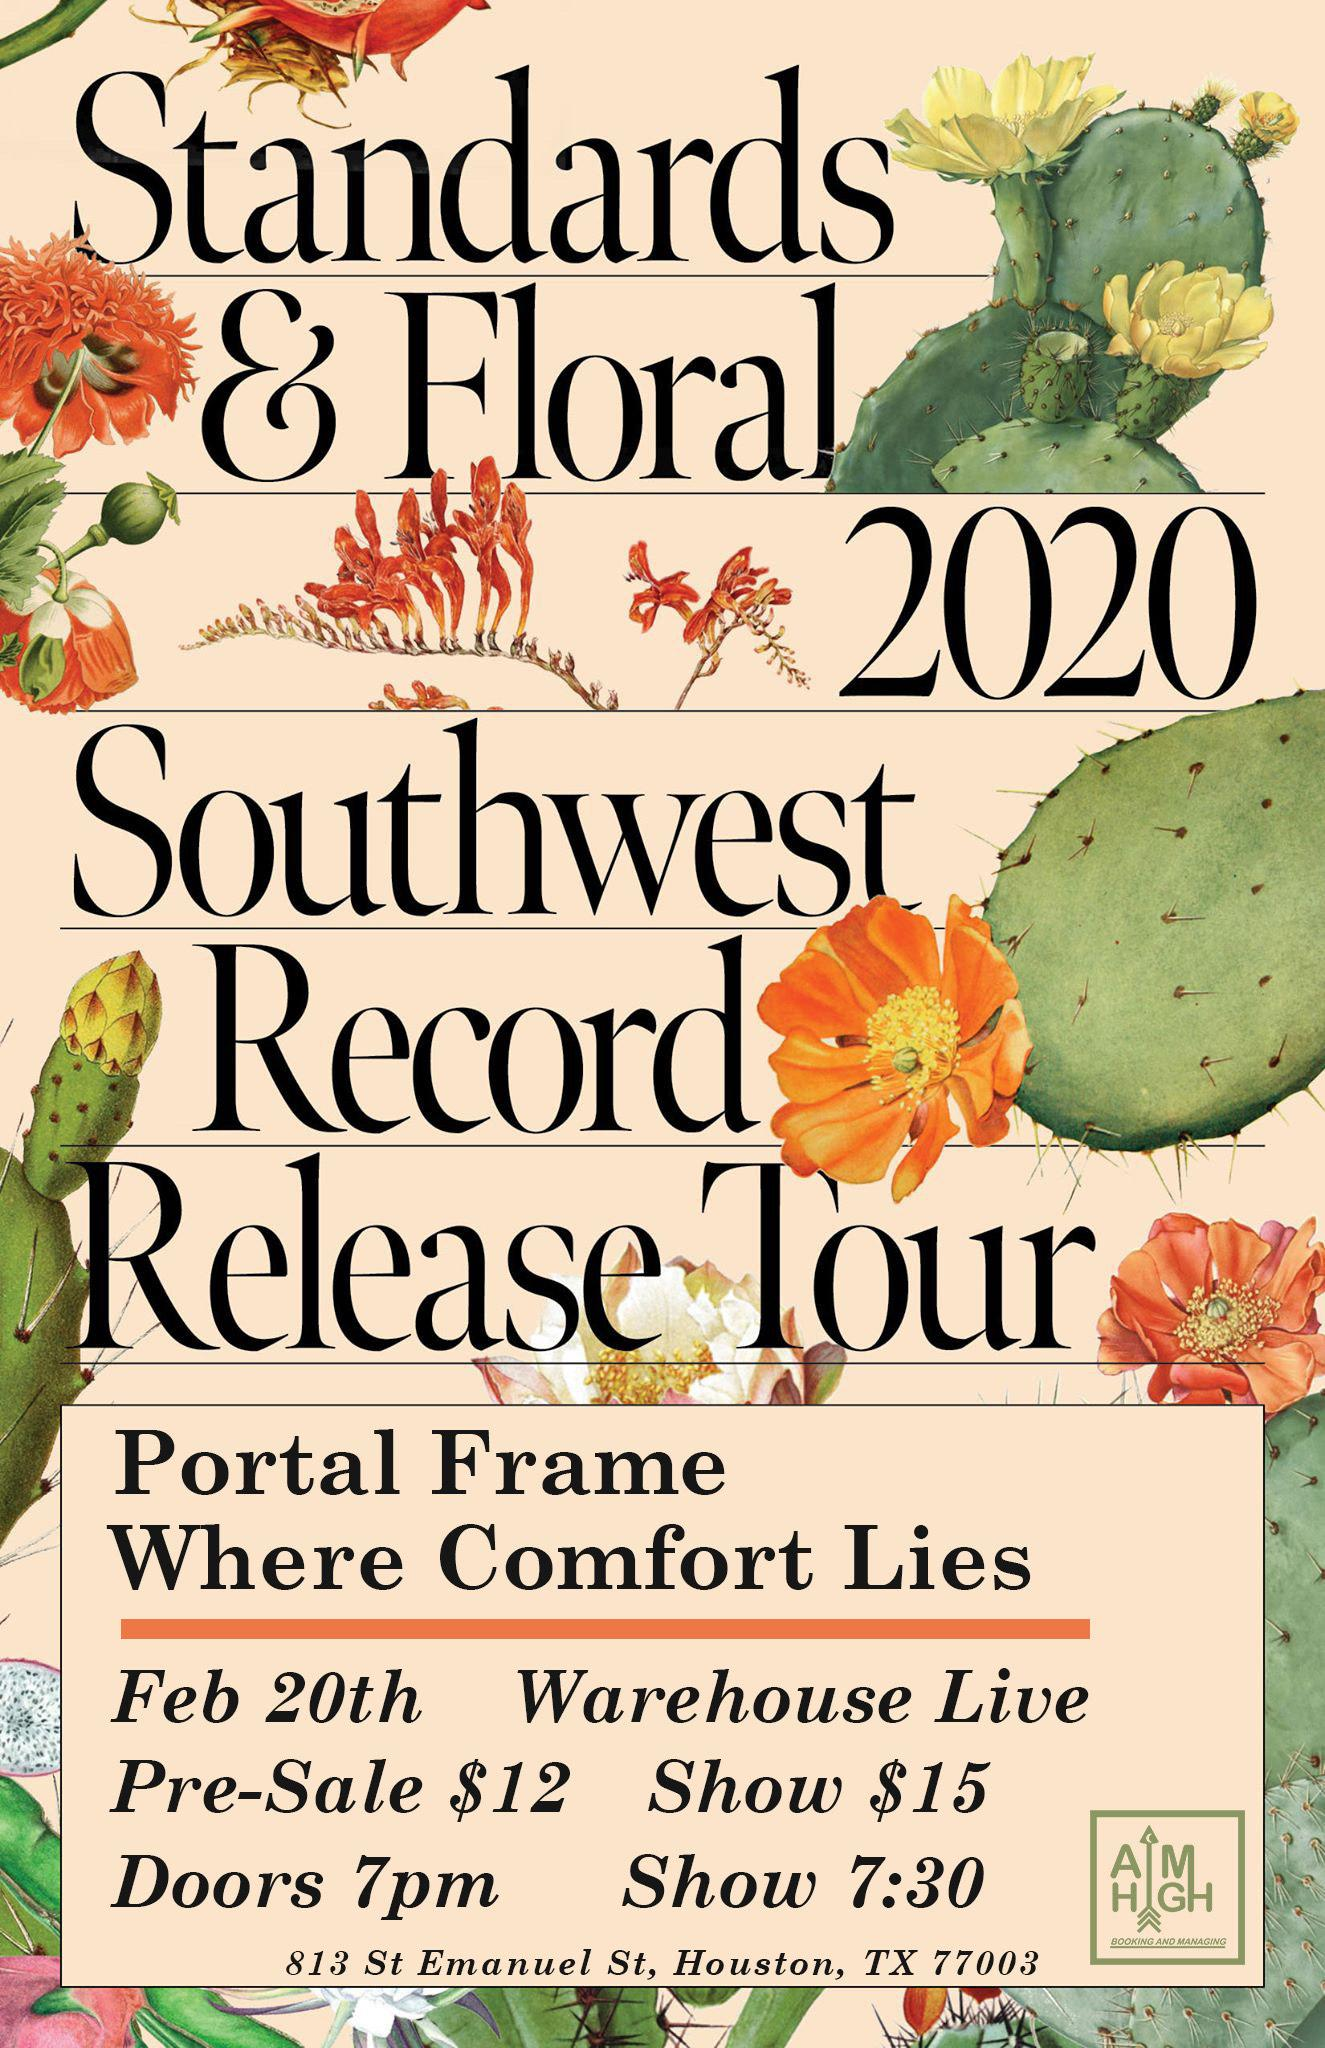 STANDARDS / FLORAL / WHERE COMFORT LIES / PORTAL FRAME